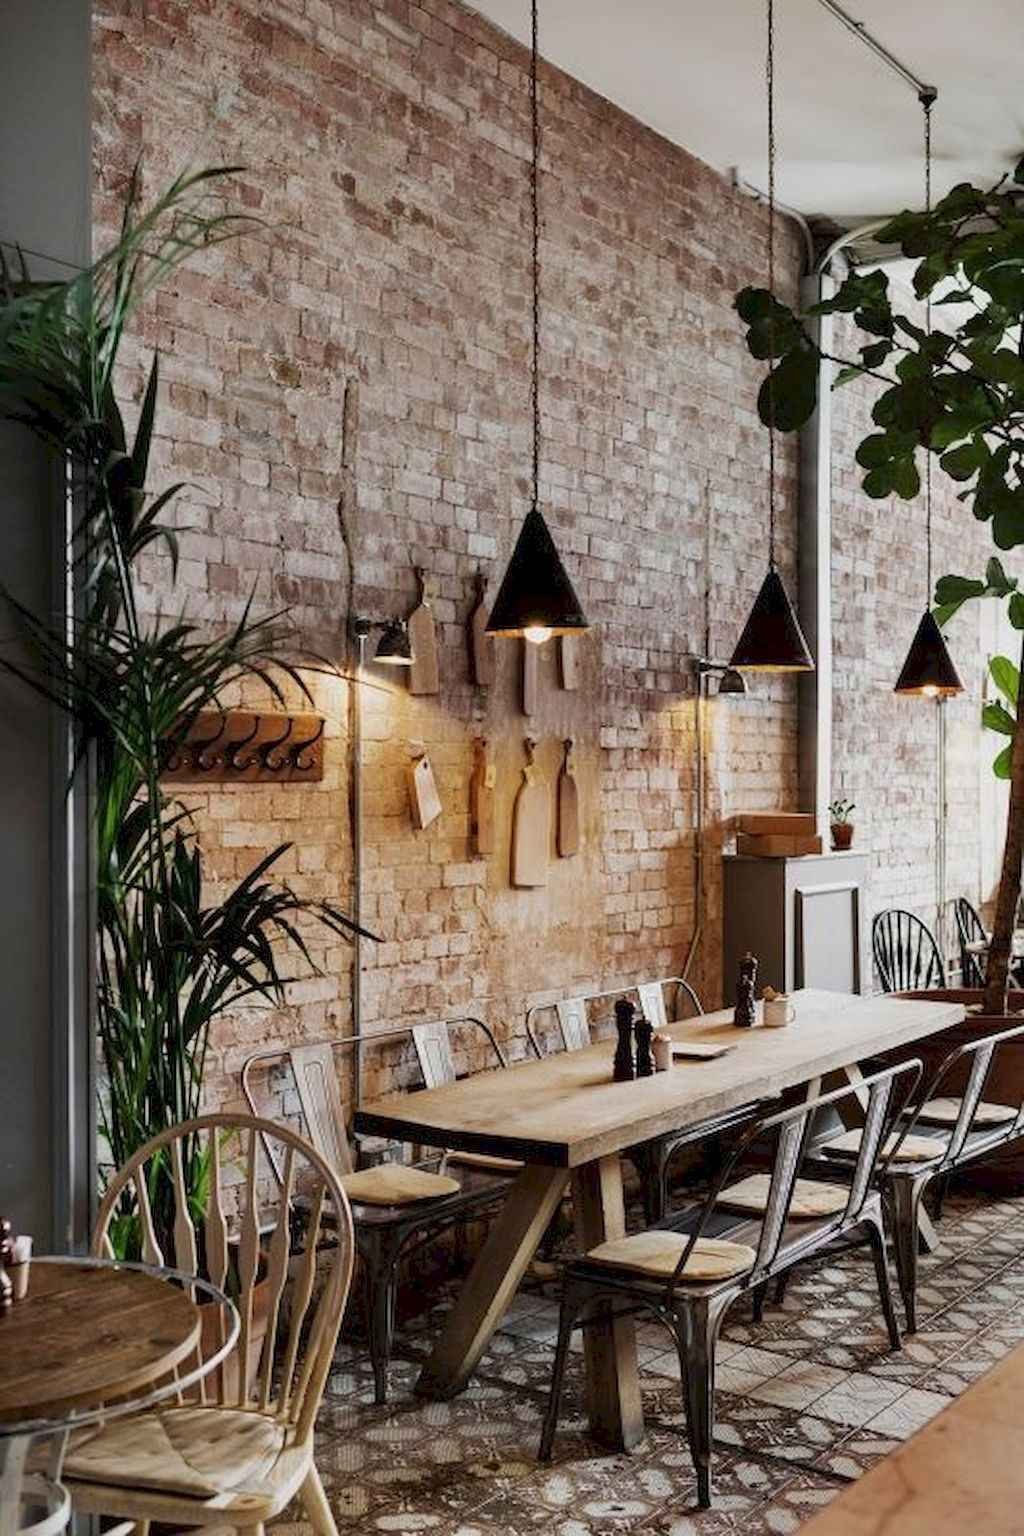 85 Rustic Farmhouse Dining Room Table Decor Ideas Page 9 Of 85 Chessy Decor Industrial Restaurant Interior Cafe Interior Design Coffee Shops Interior